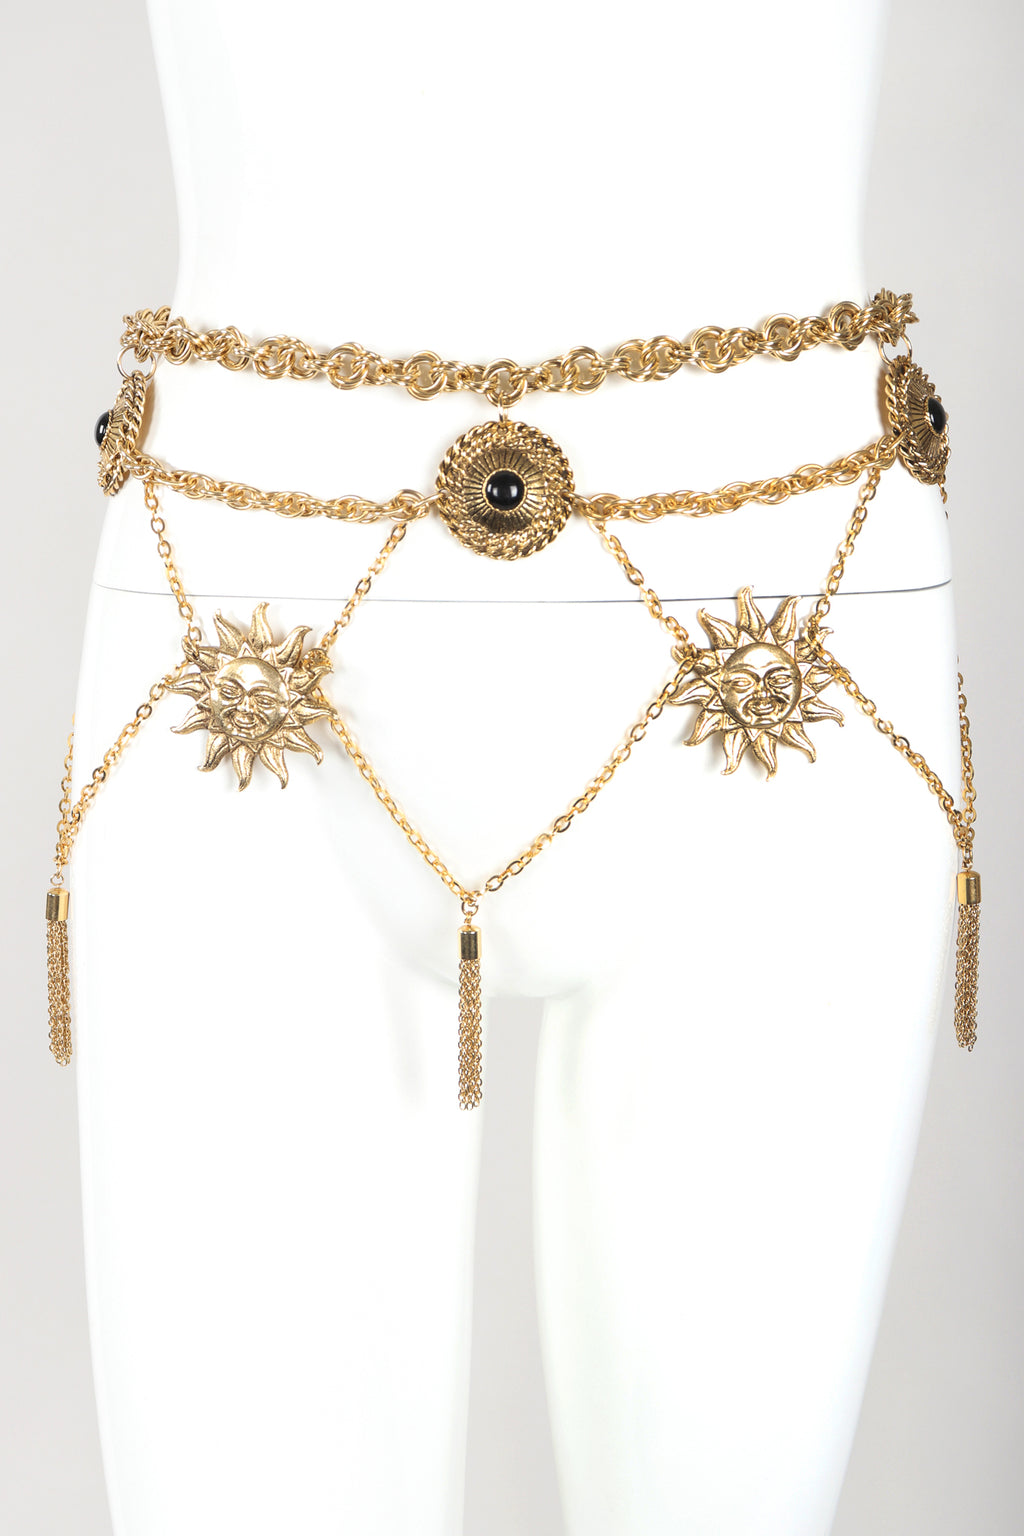 Recess Designer Consignment Vintage Celestial Tiered Waist Chain Belt Skirt Los Angeles resale